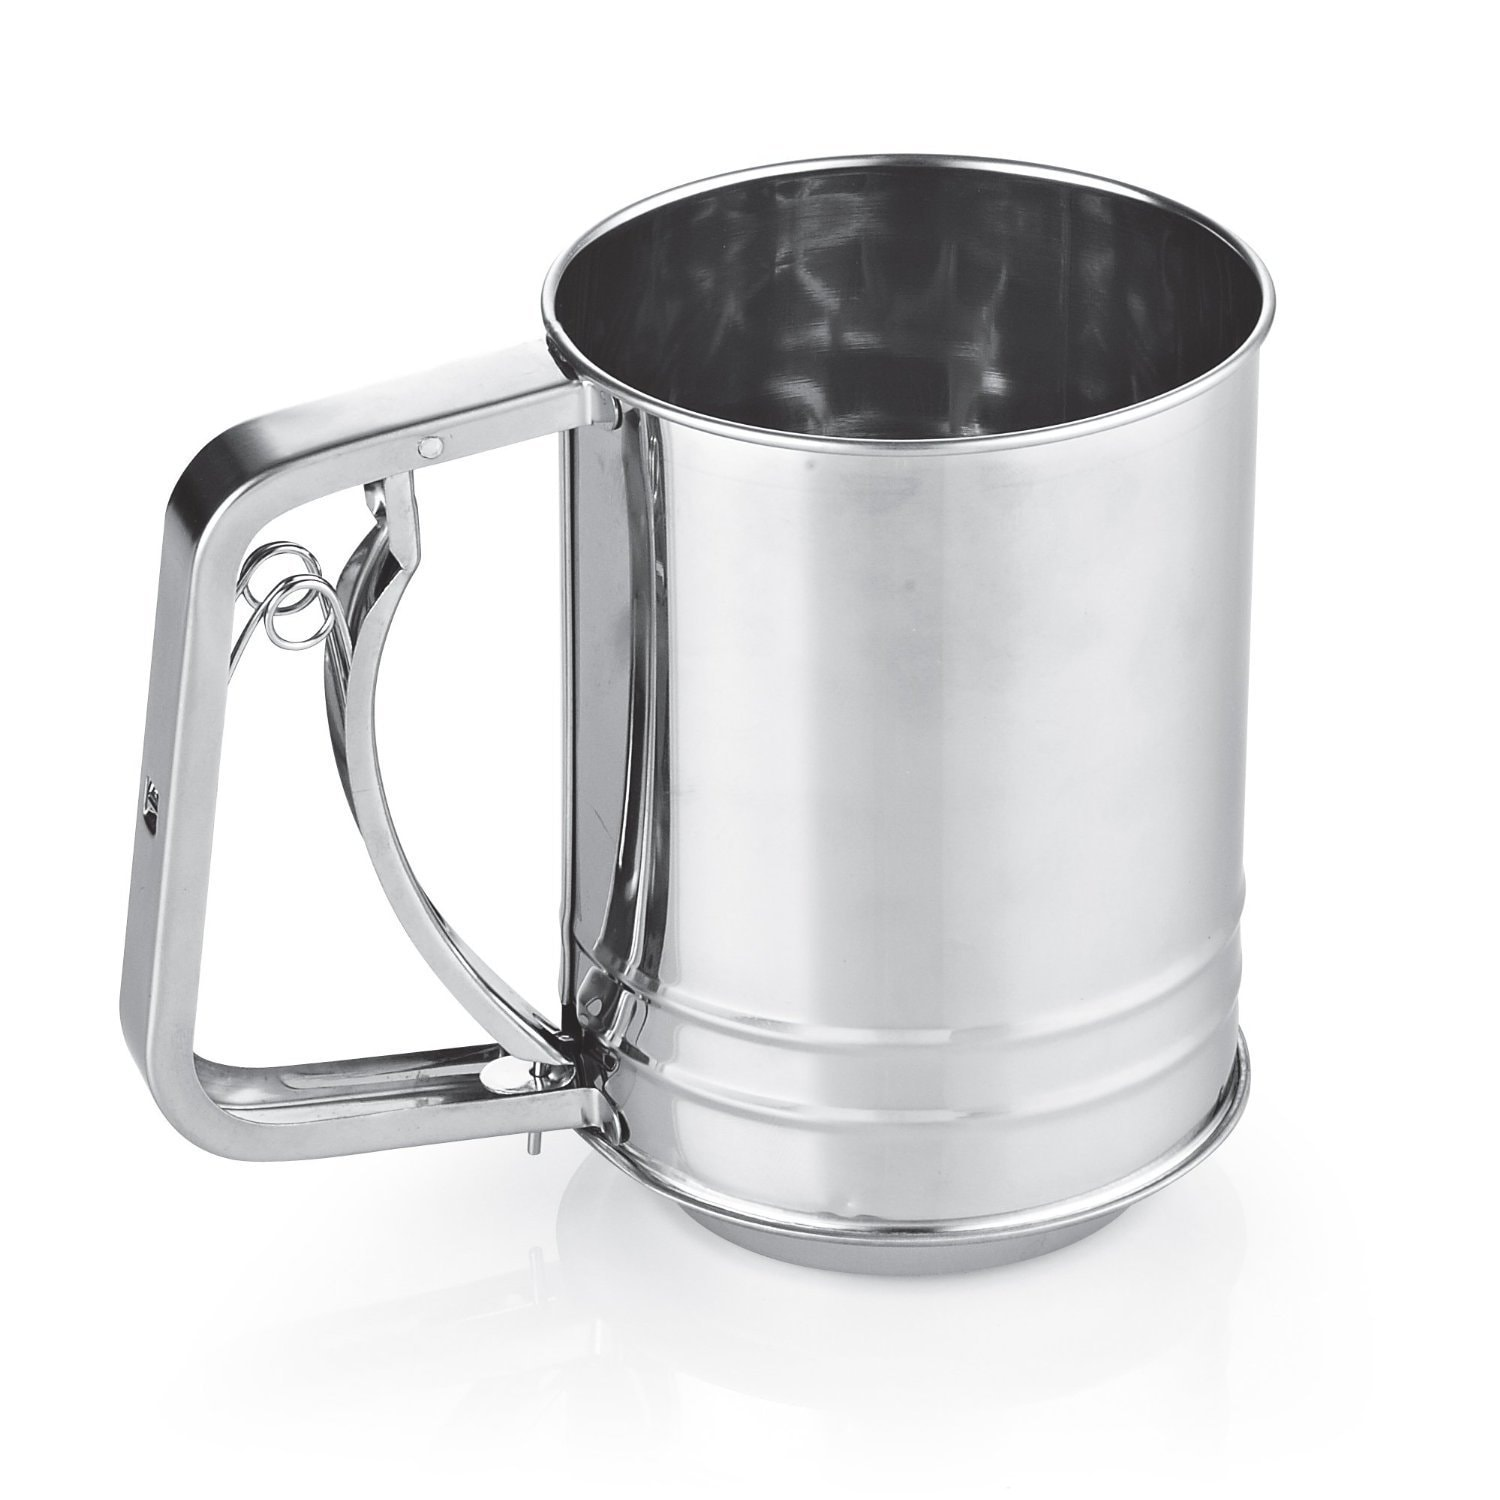 Cook N Home 3-Cup Stainless Steel (Silver) Flour Sifter (...